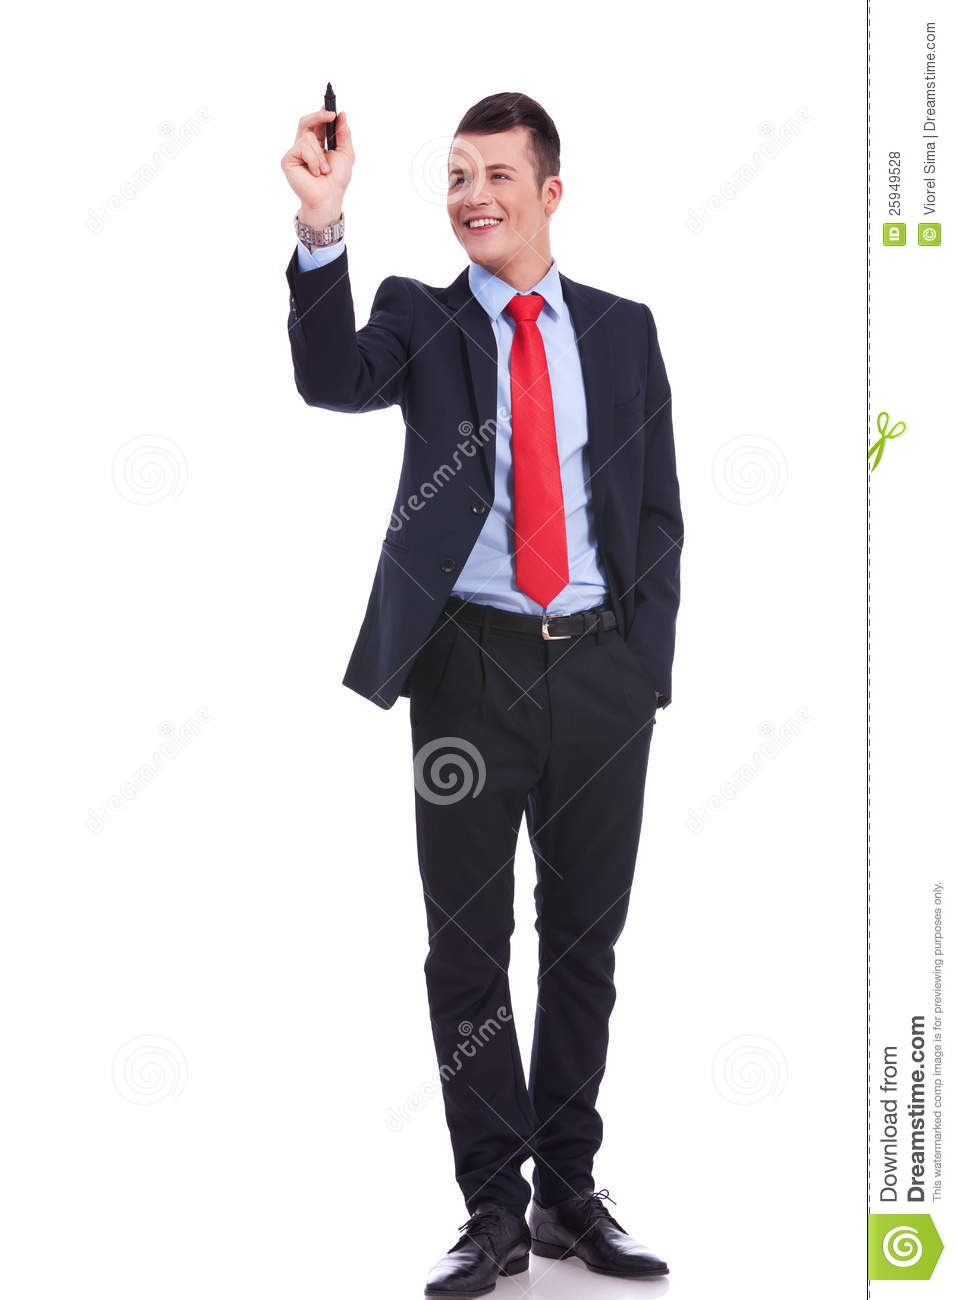 full-body-picture-business-man-writing-25949528.jpg